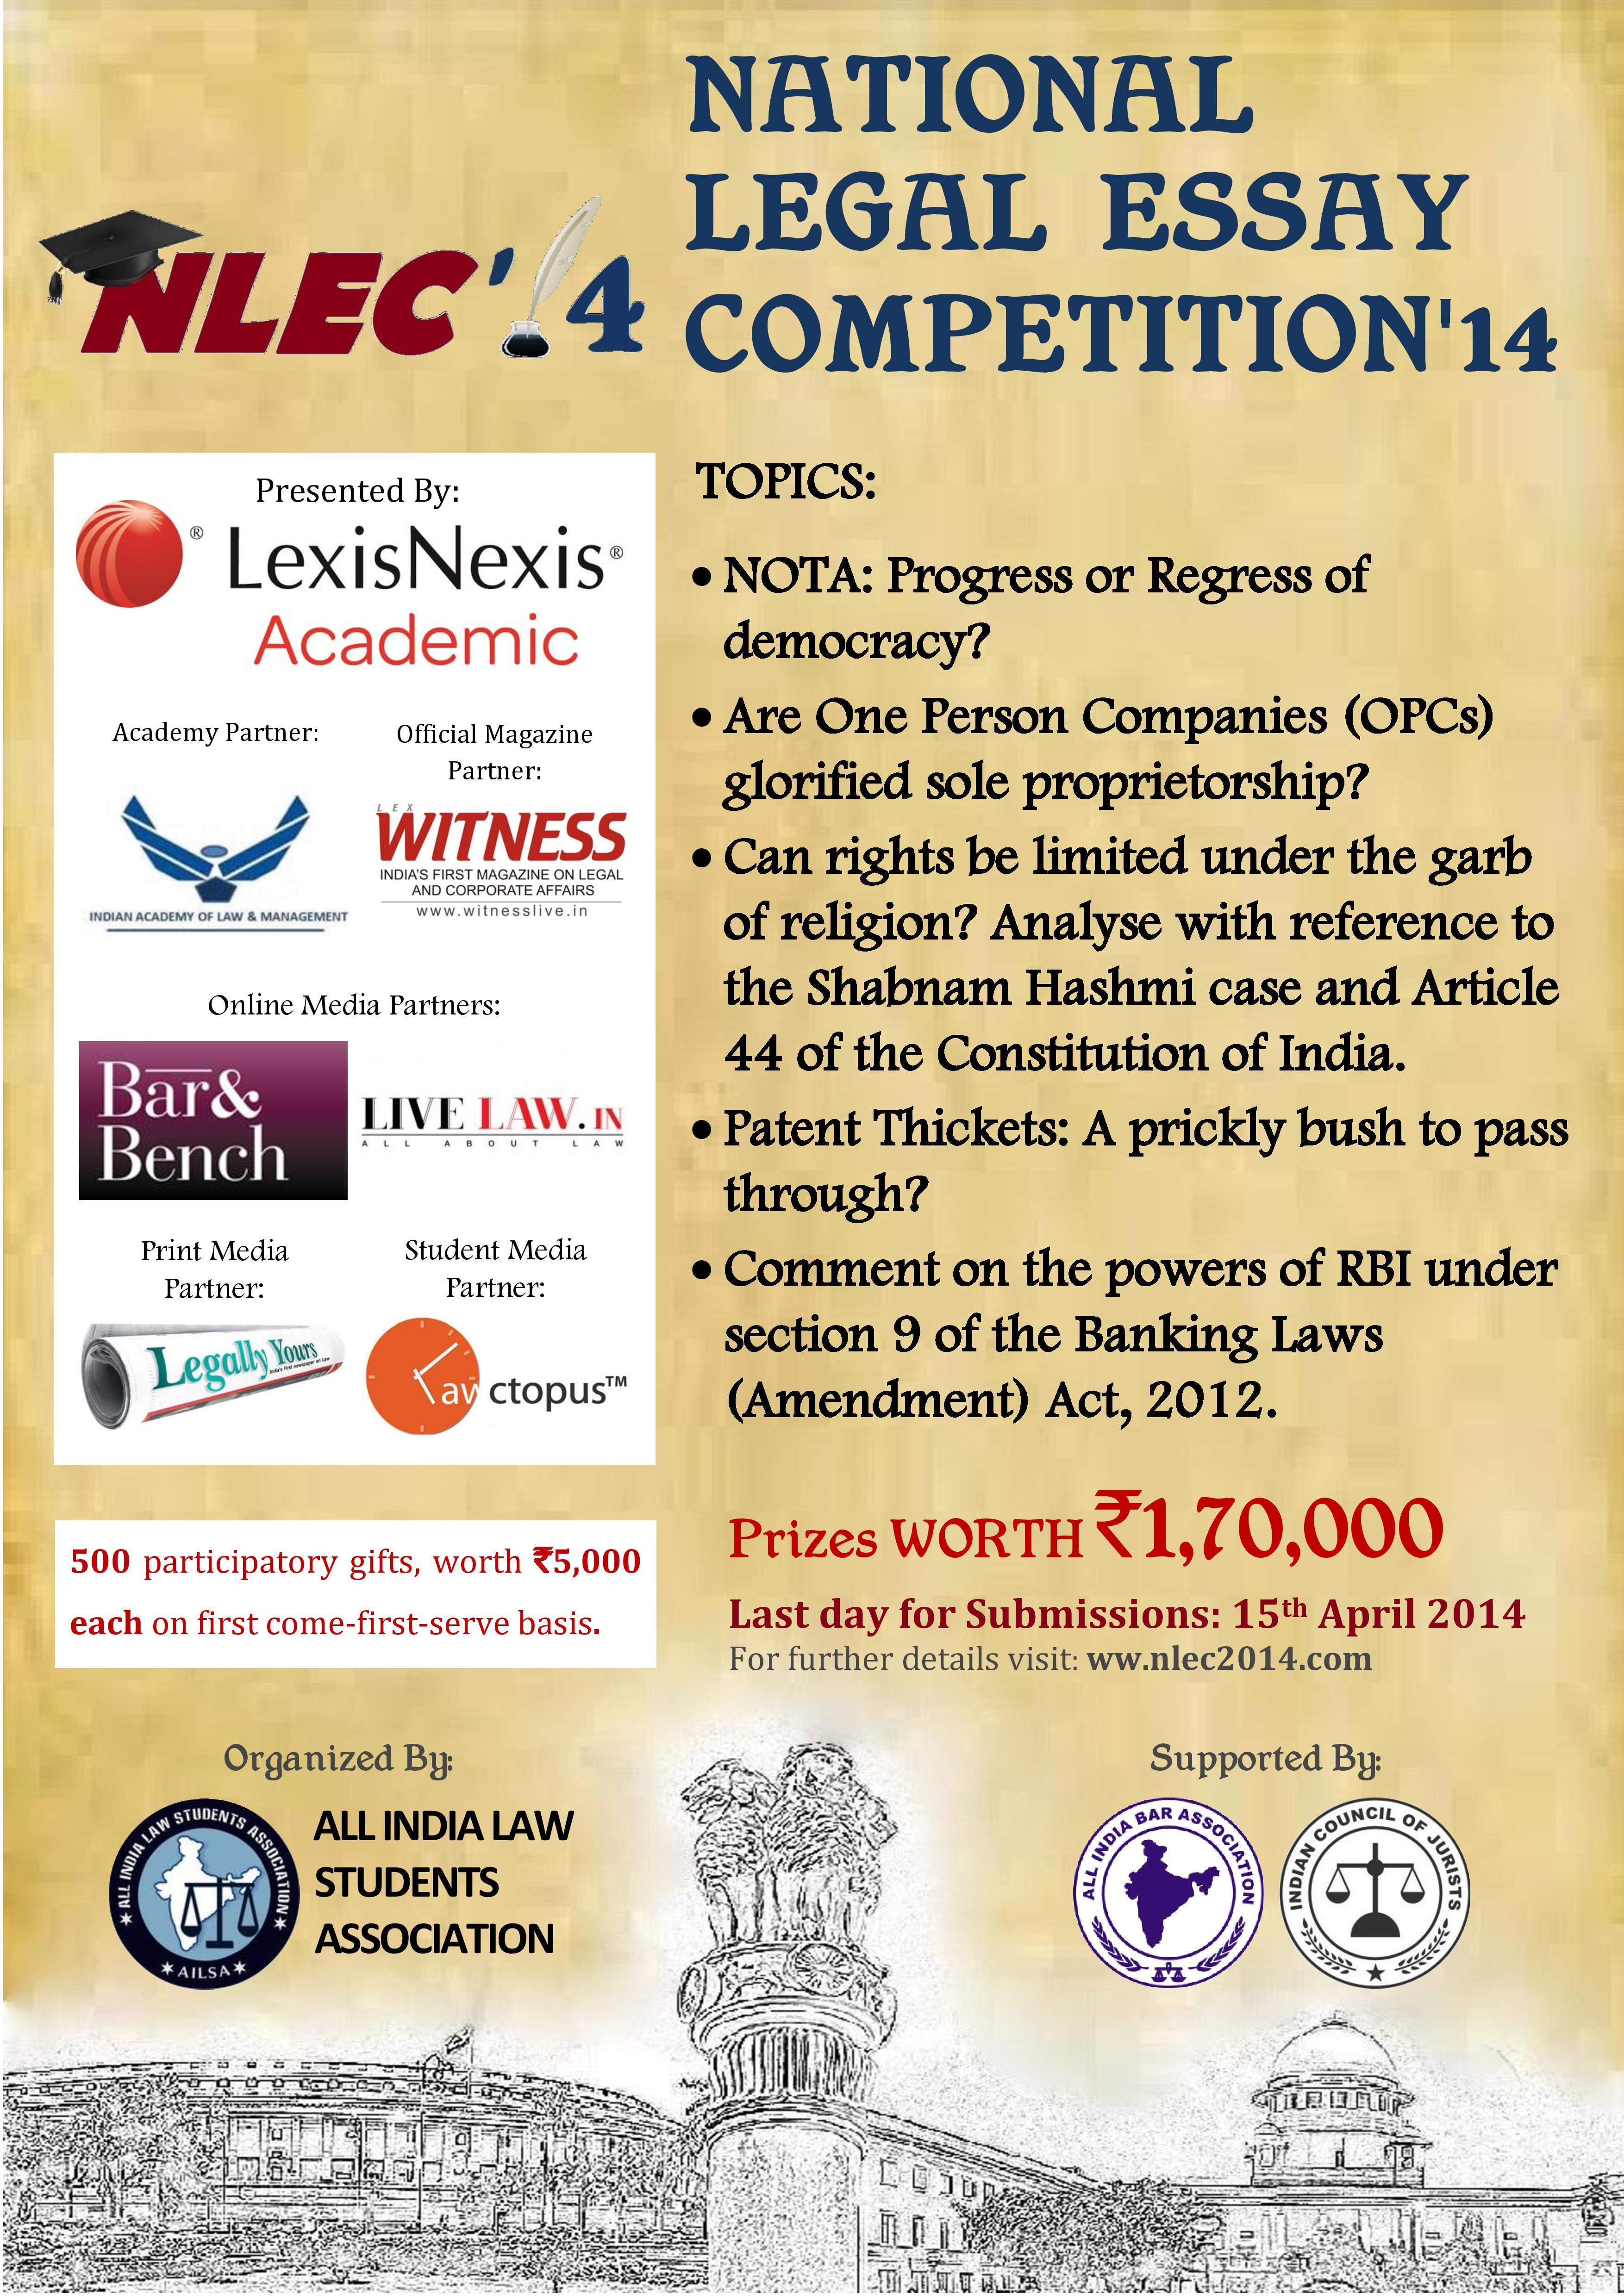 008 Essay Writing Competitions In India Custom Paper Academic Competition For College Students P Topics Contests Imposing 2014 Maryknoll Contest Winners Full